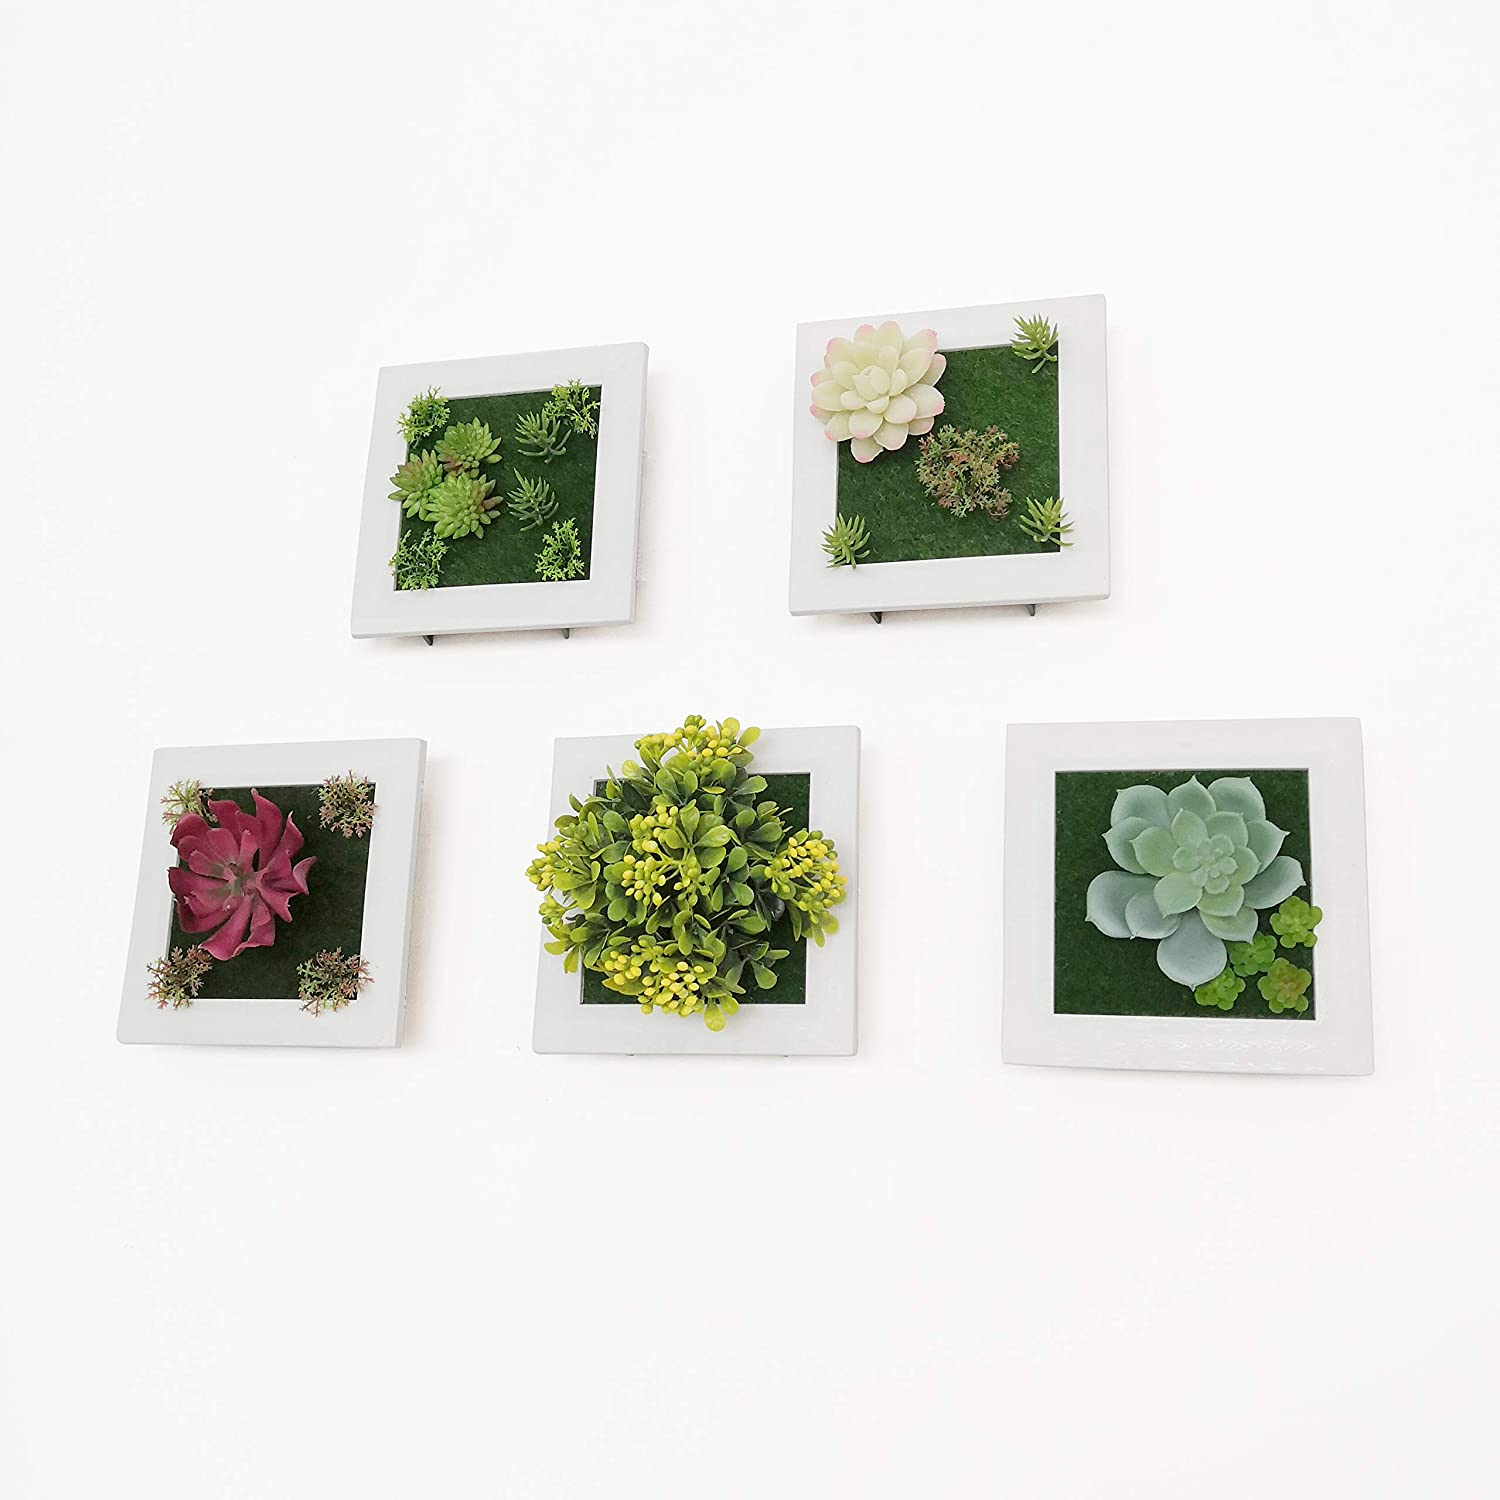 Amazon Com Artificial Plant Frame Wall Hanging For Indoor Wall Decor Tabletop 3d Faux Succulents For Home Living Room Bedroom Cafe Decorative Set Of 5 Kitchen Dining